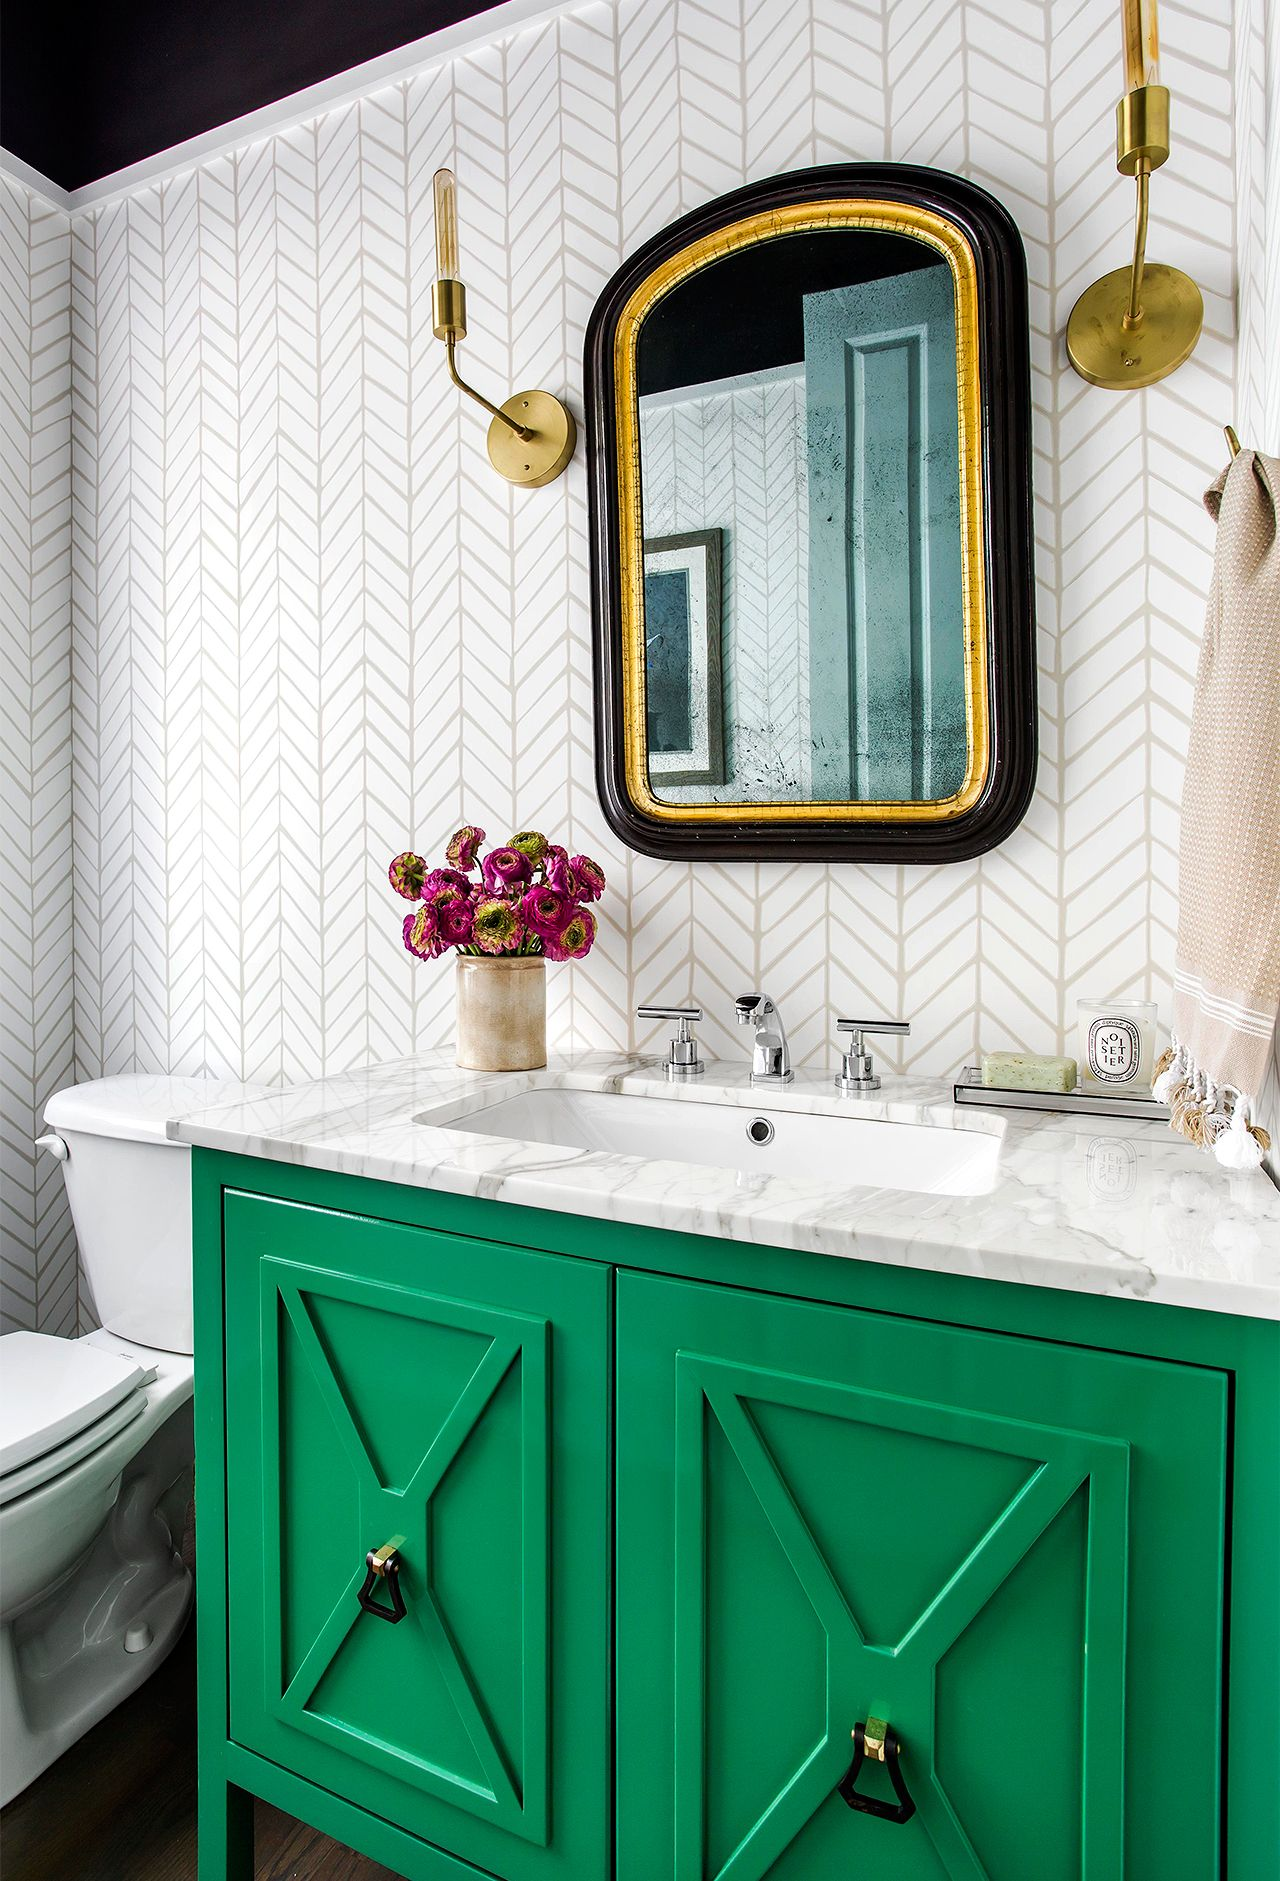 22 Bathroom Design Details You're Forgetting About